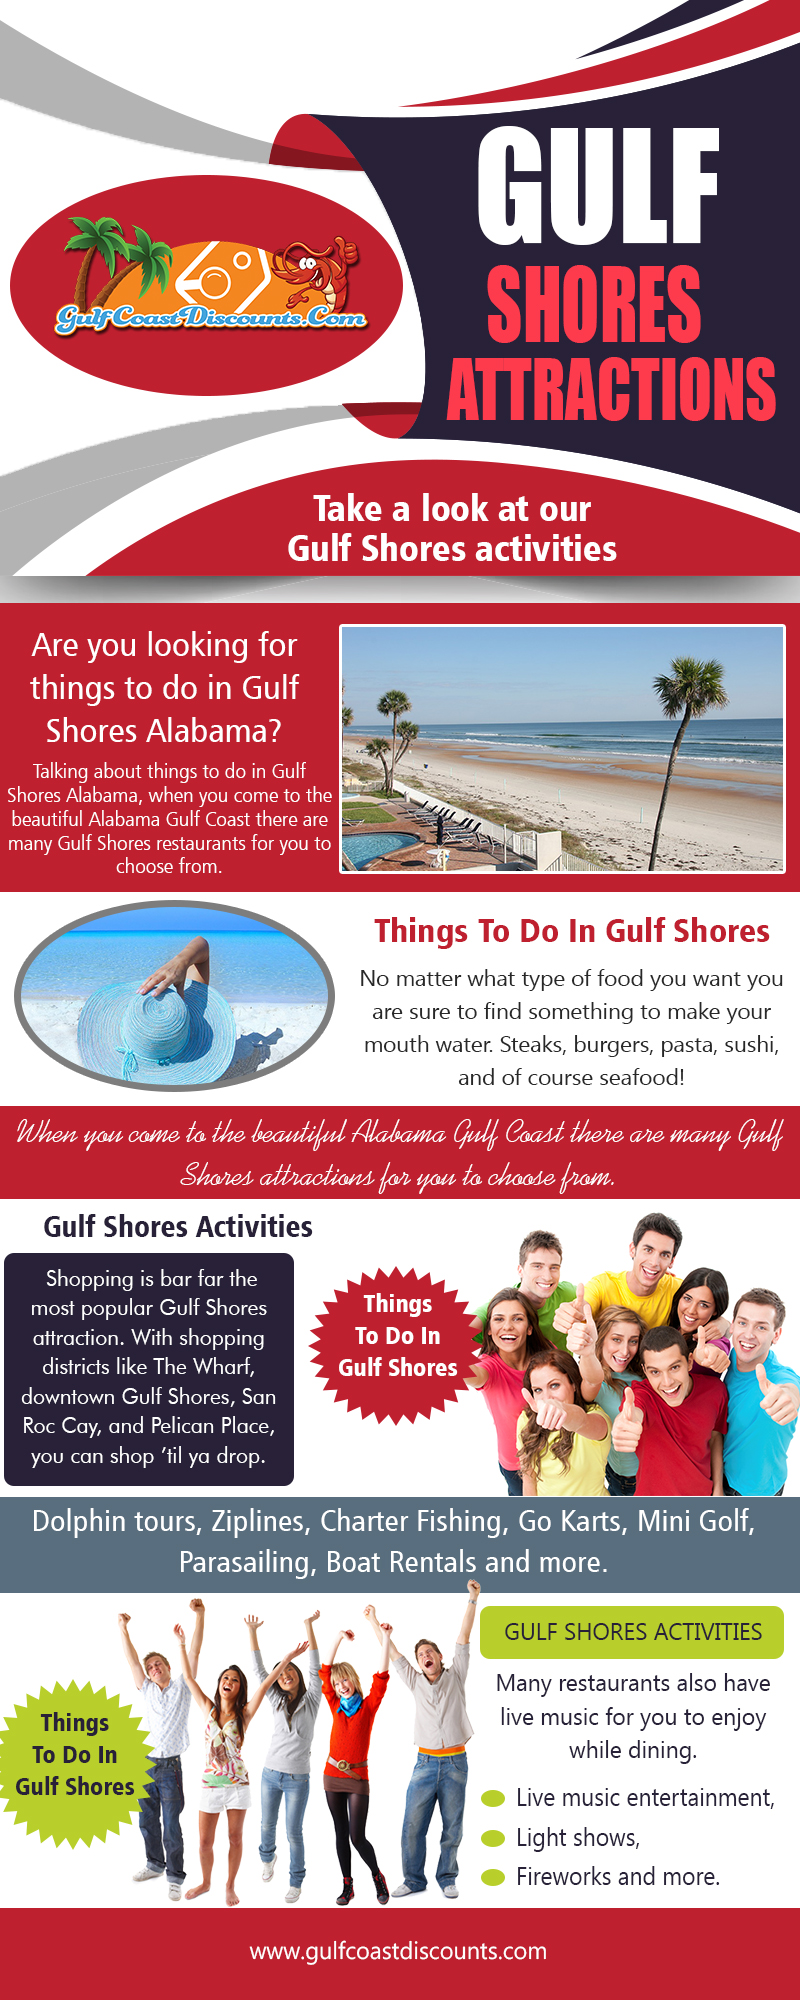 Gulf Shores Attractions